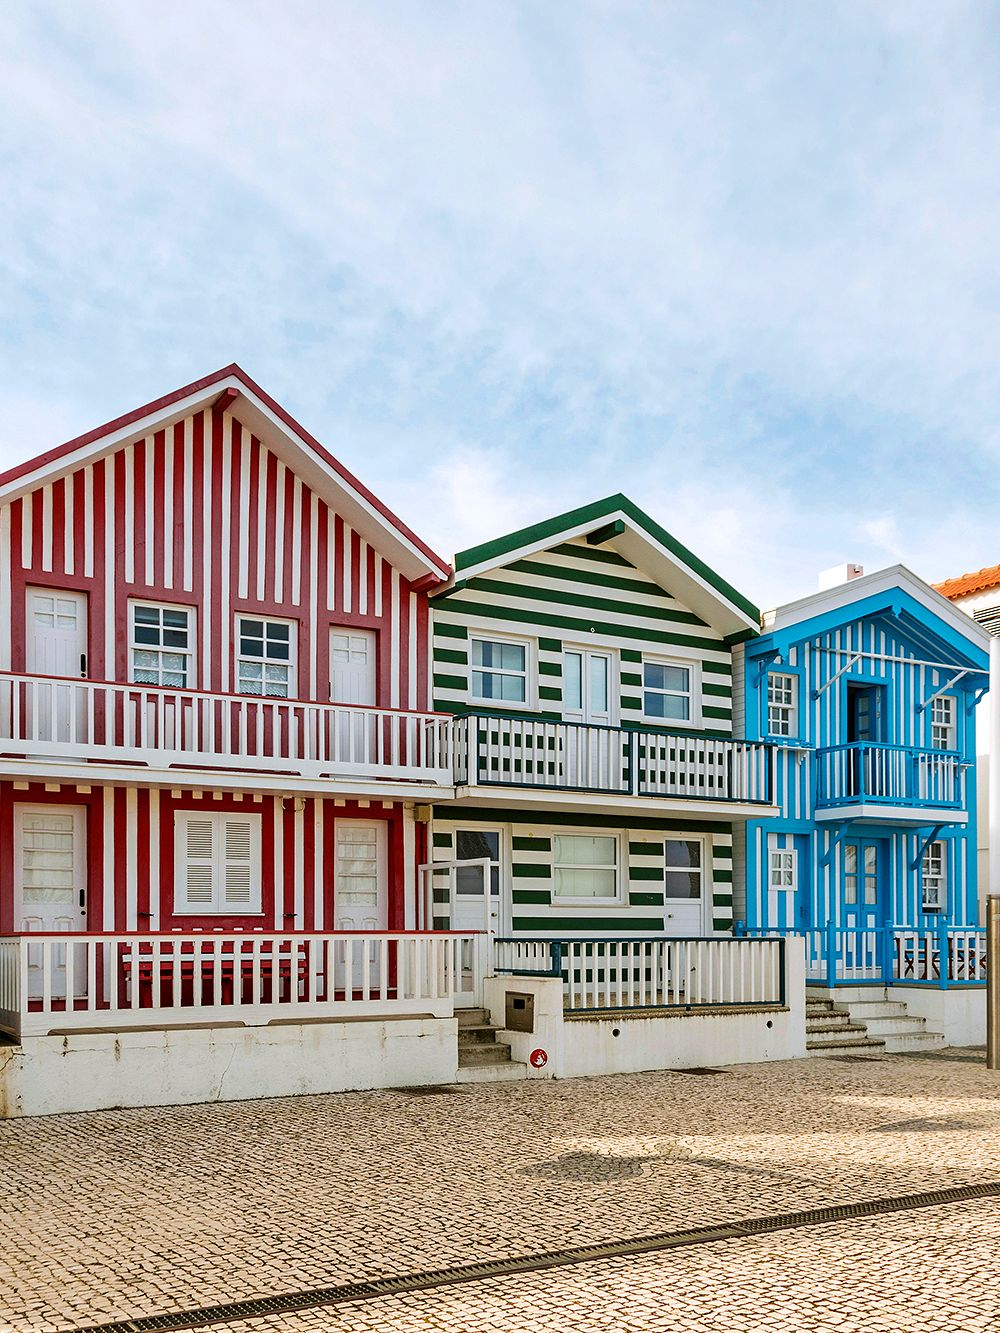 Striped houses in Costa Nova, Portugal